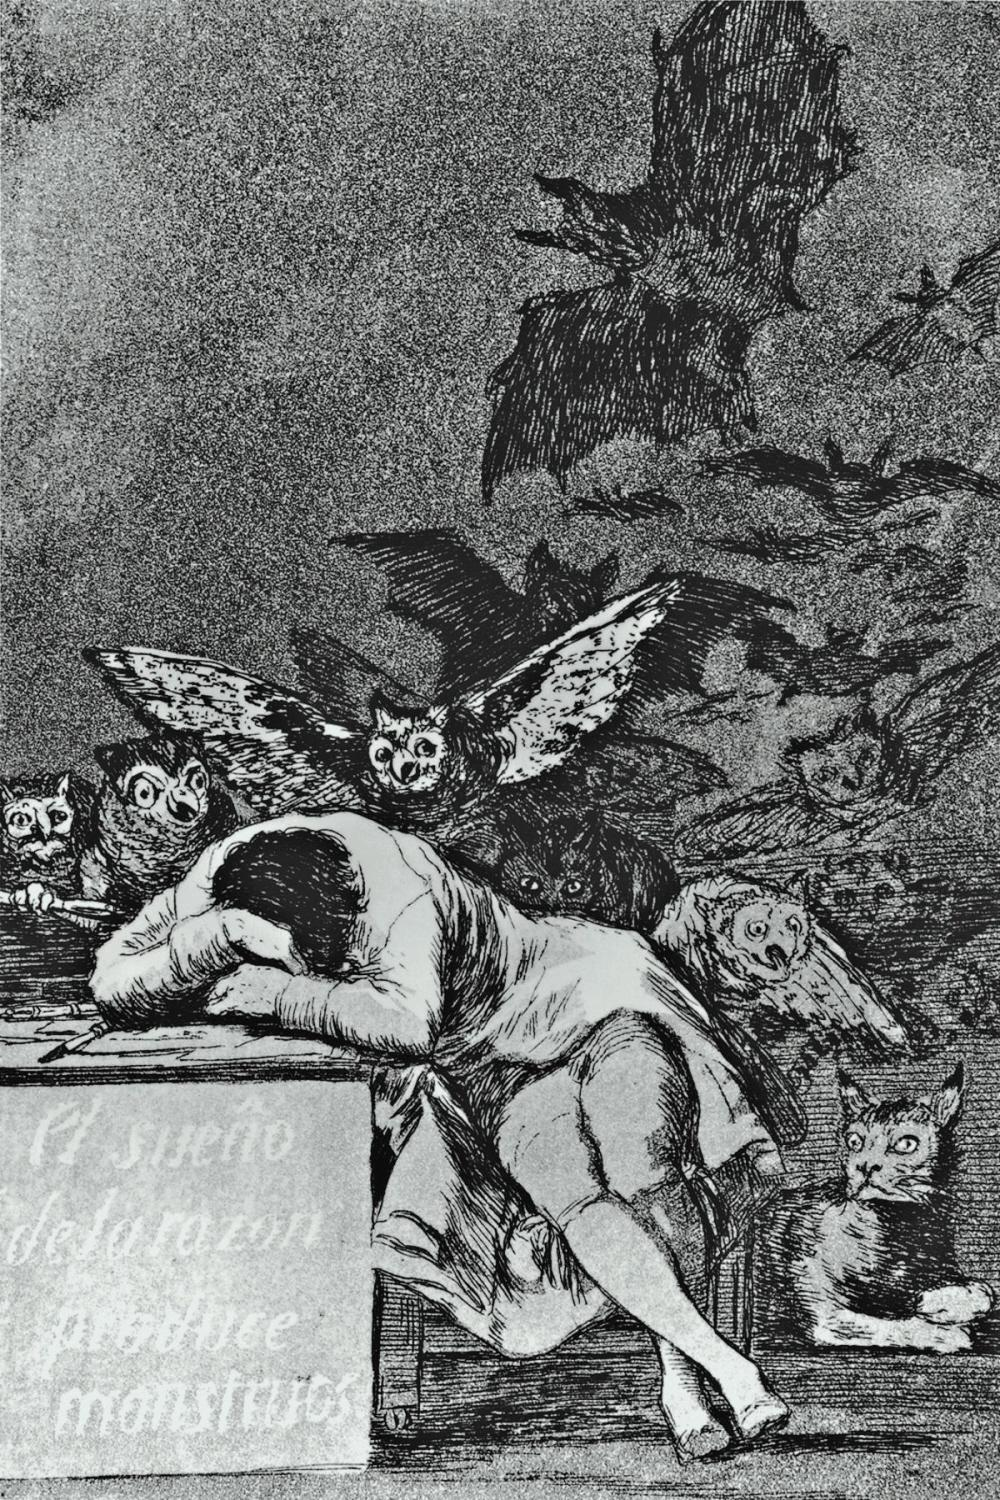 03-francisco-de-goya-y-lucientes-the-sleep-of-reason-produces-monsters-los-caprichos-the-caprices-nr-43-1799